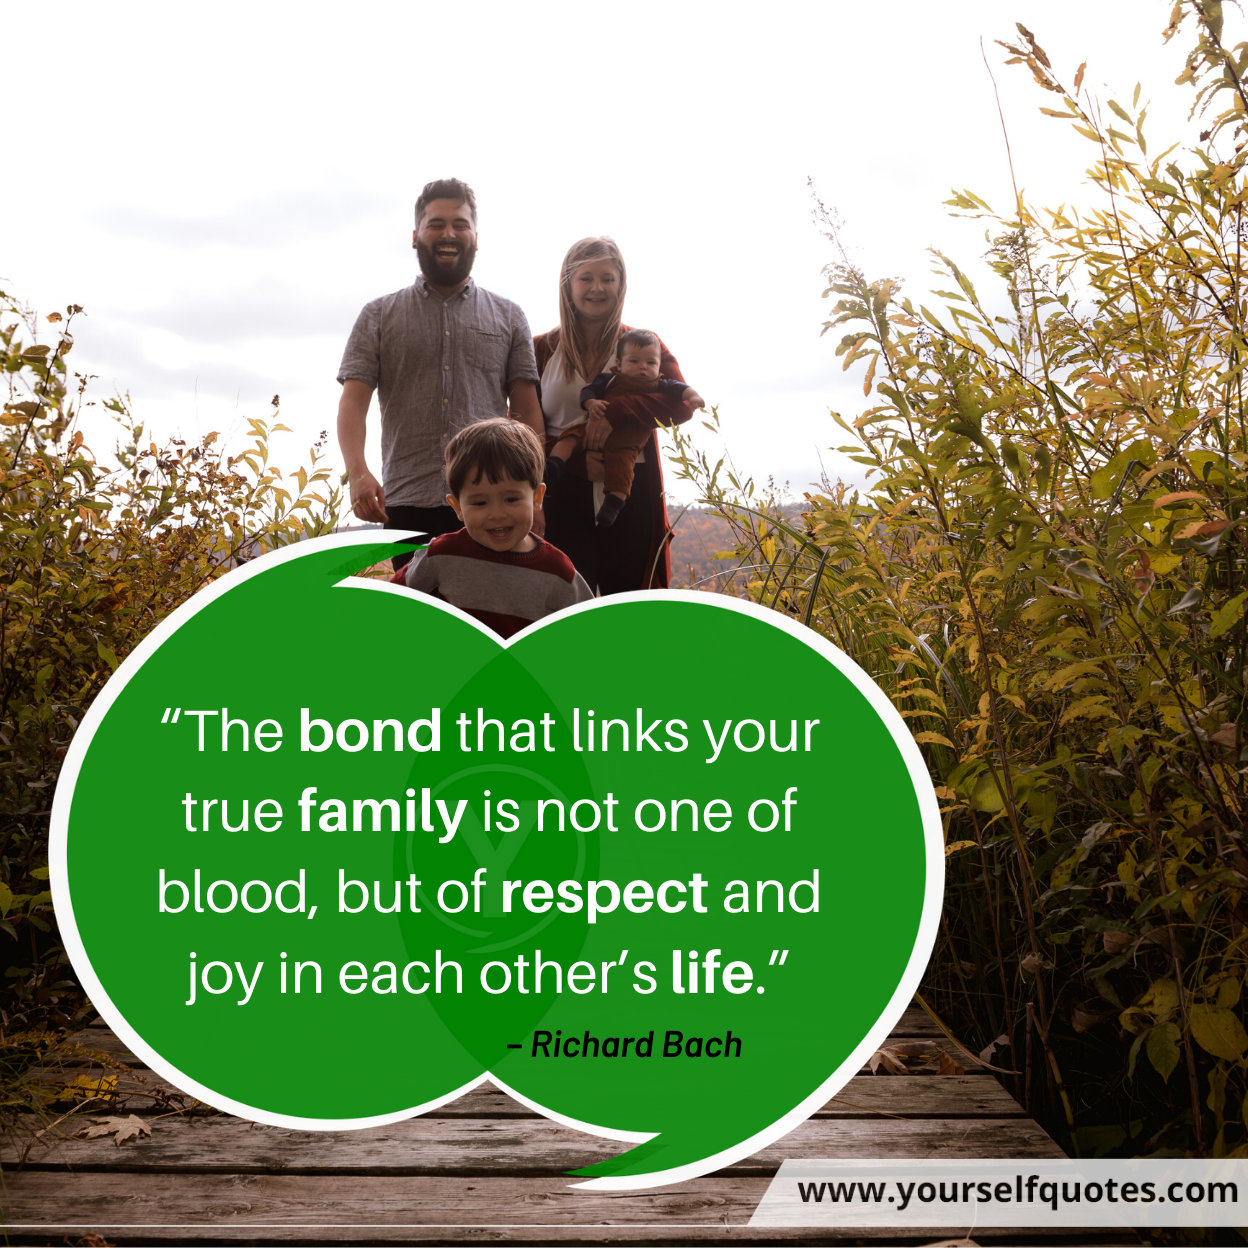 Quote About Family by Richard Bach